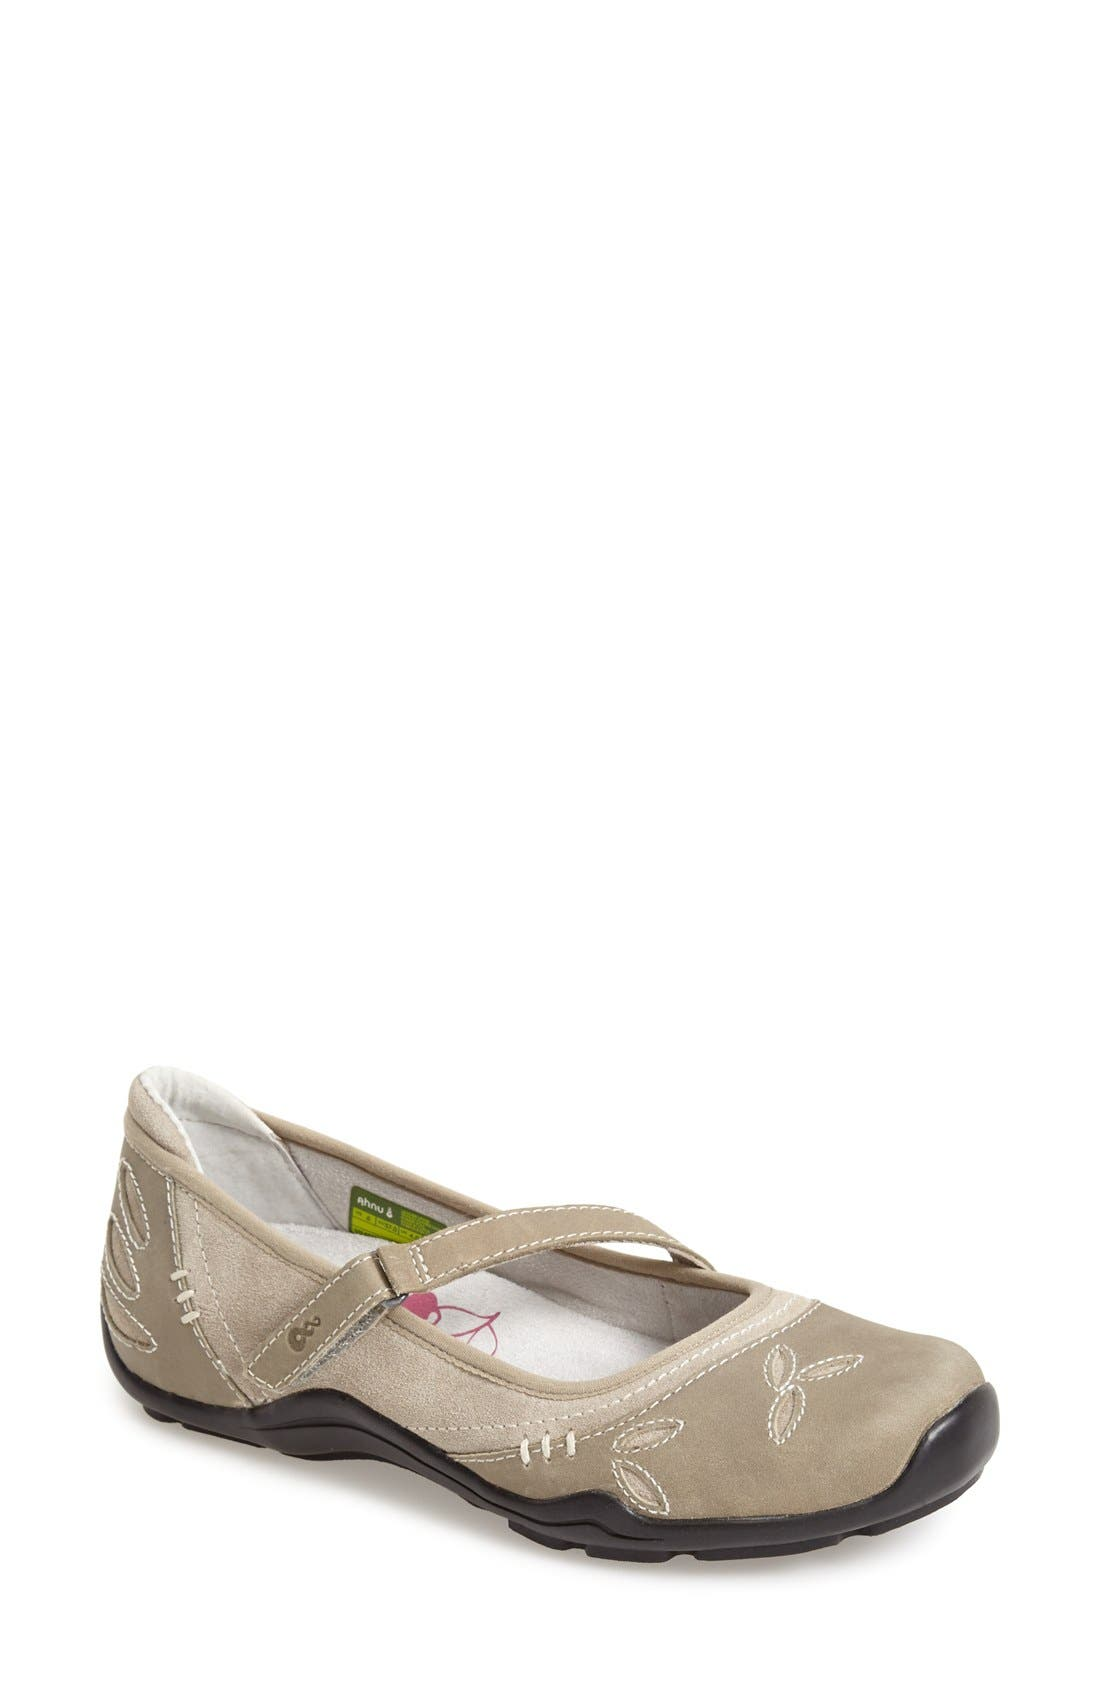 Main Image - Ahnu 'Gracie Pro' Leather Flat (Women)